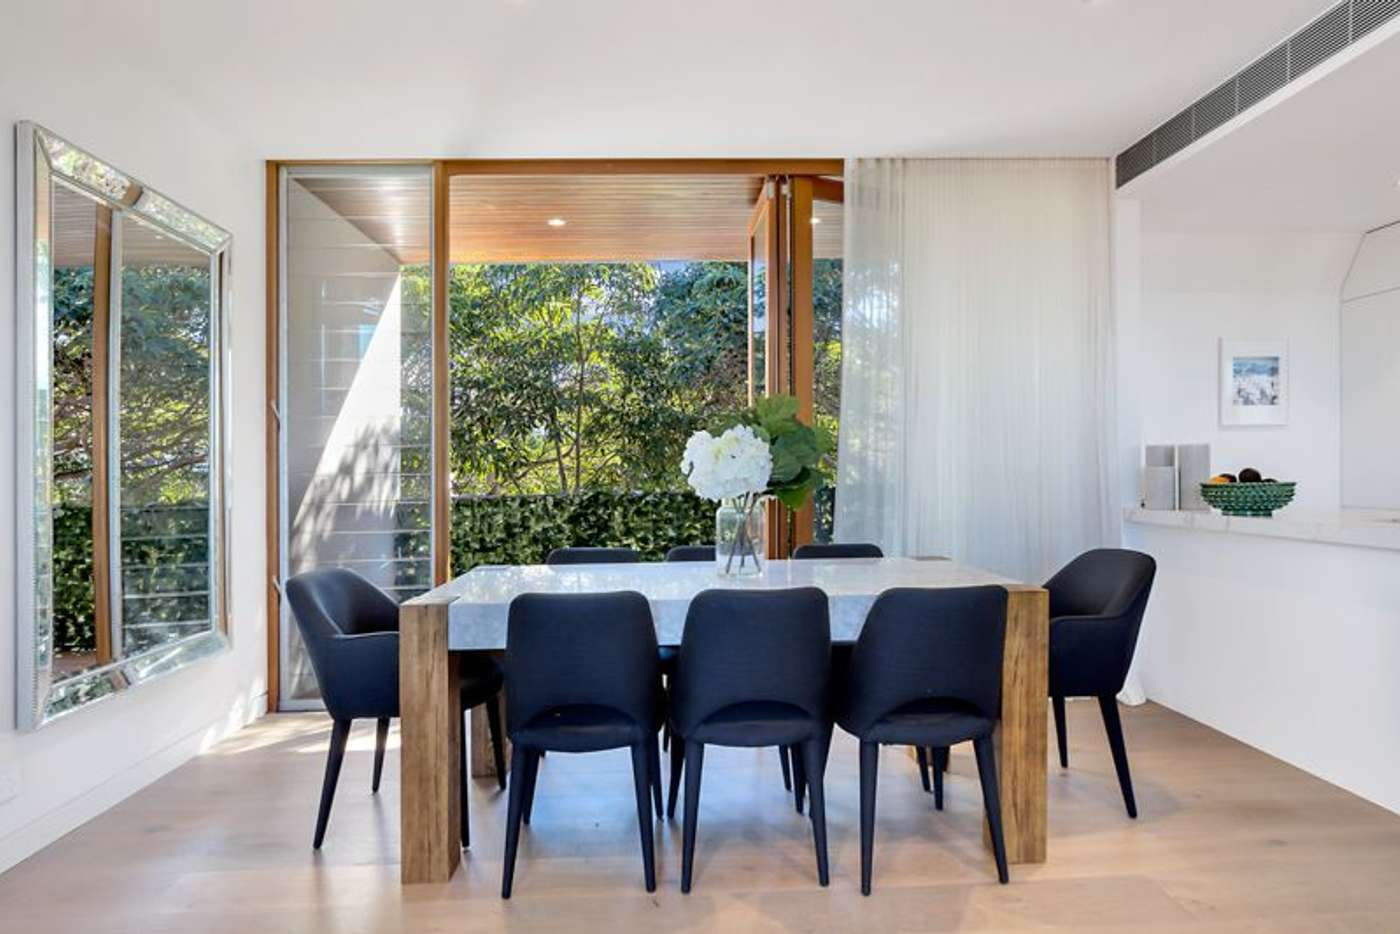 Main view of Homely apartment listing, 6/43A Captain Pipers Road, Vaucluse NSW 2030